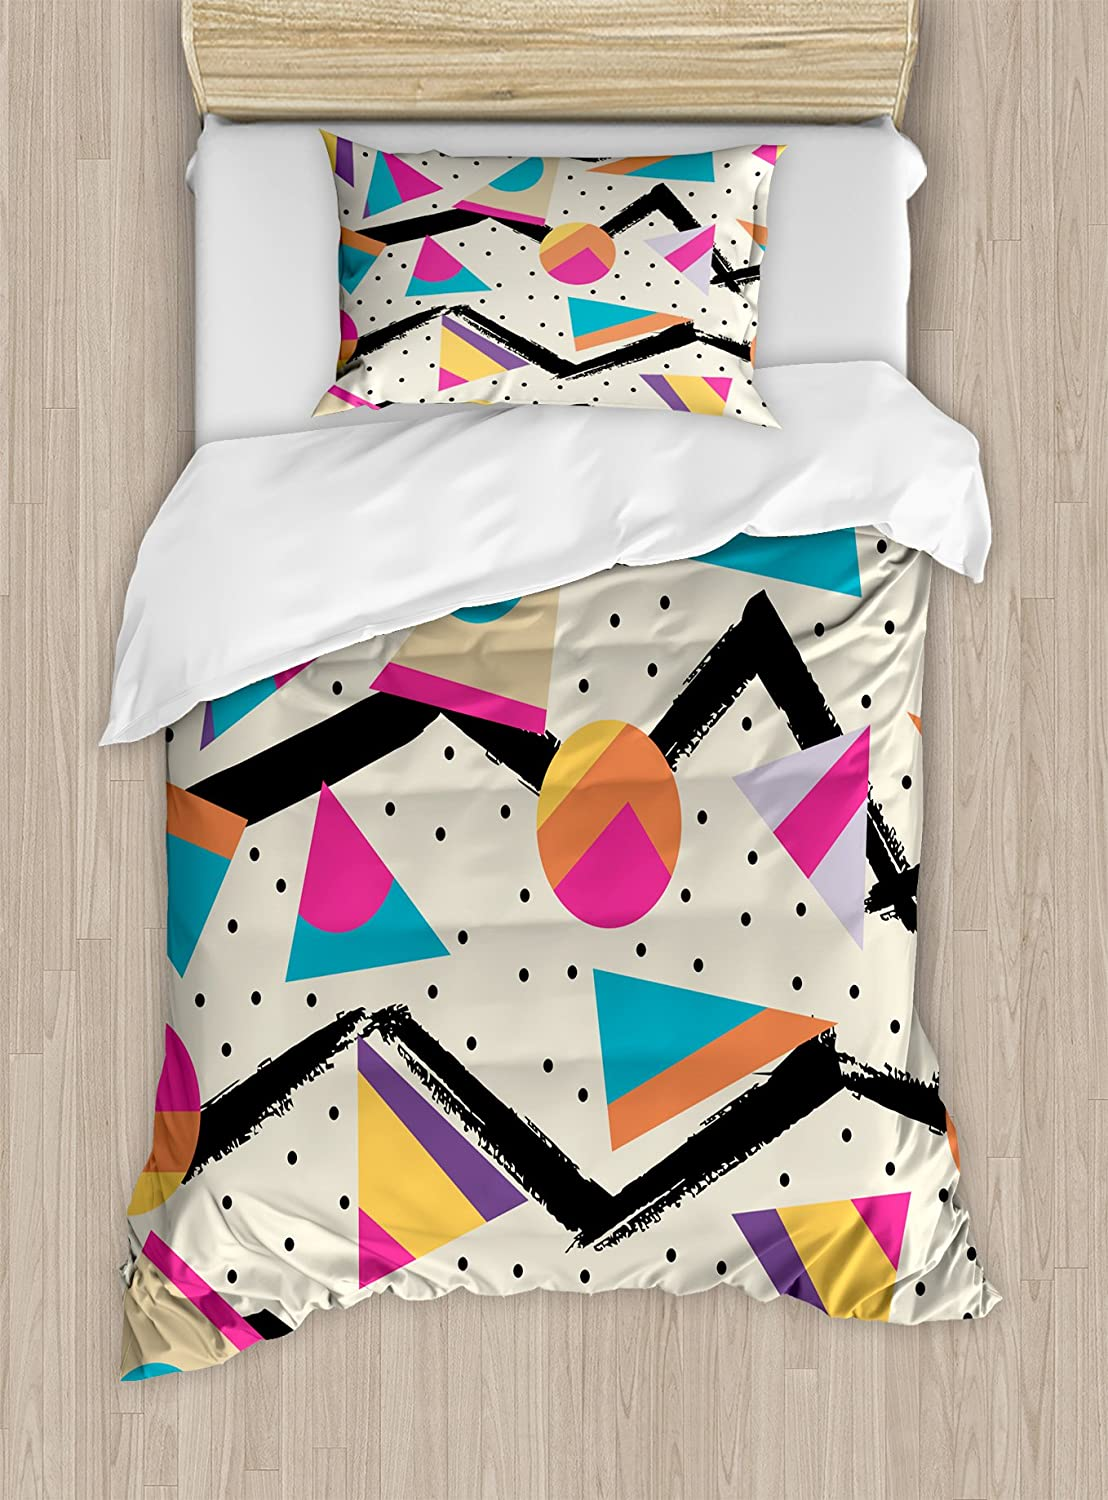 Ambesonne Indie Duvet Cover Set, Eighties Memphis Fashion Style Geometric Abstract Colorful Design with Dots Funky, Decorative 2 Piece Bedding Set with 1 Pillow Sham, Twin Size, Cream Pink